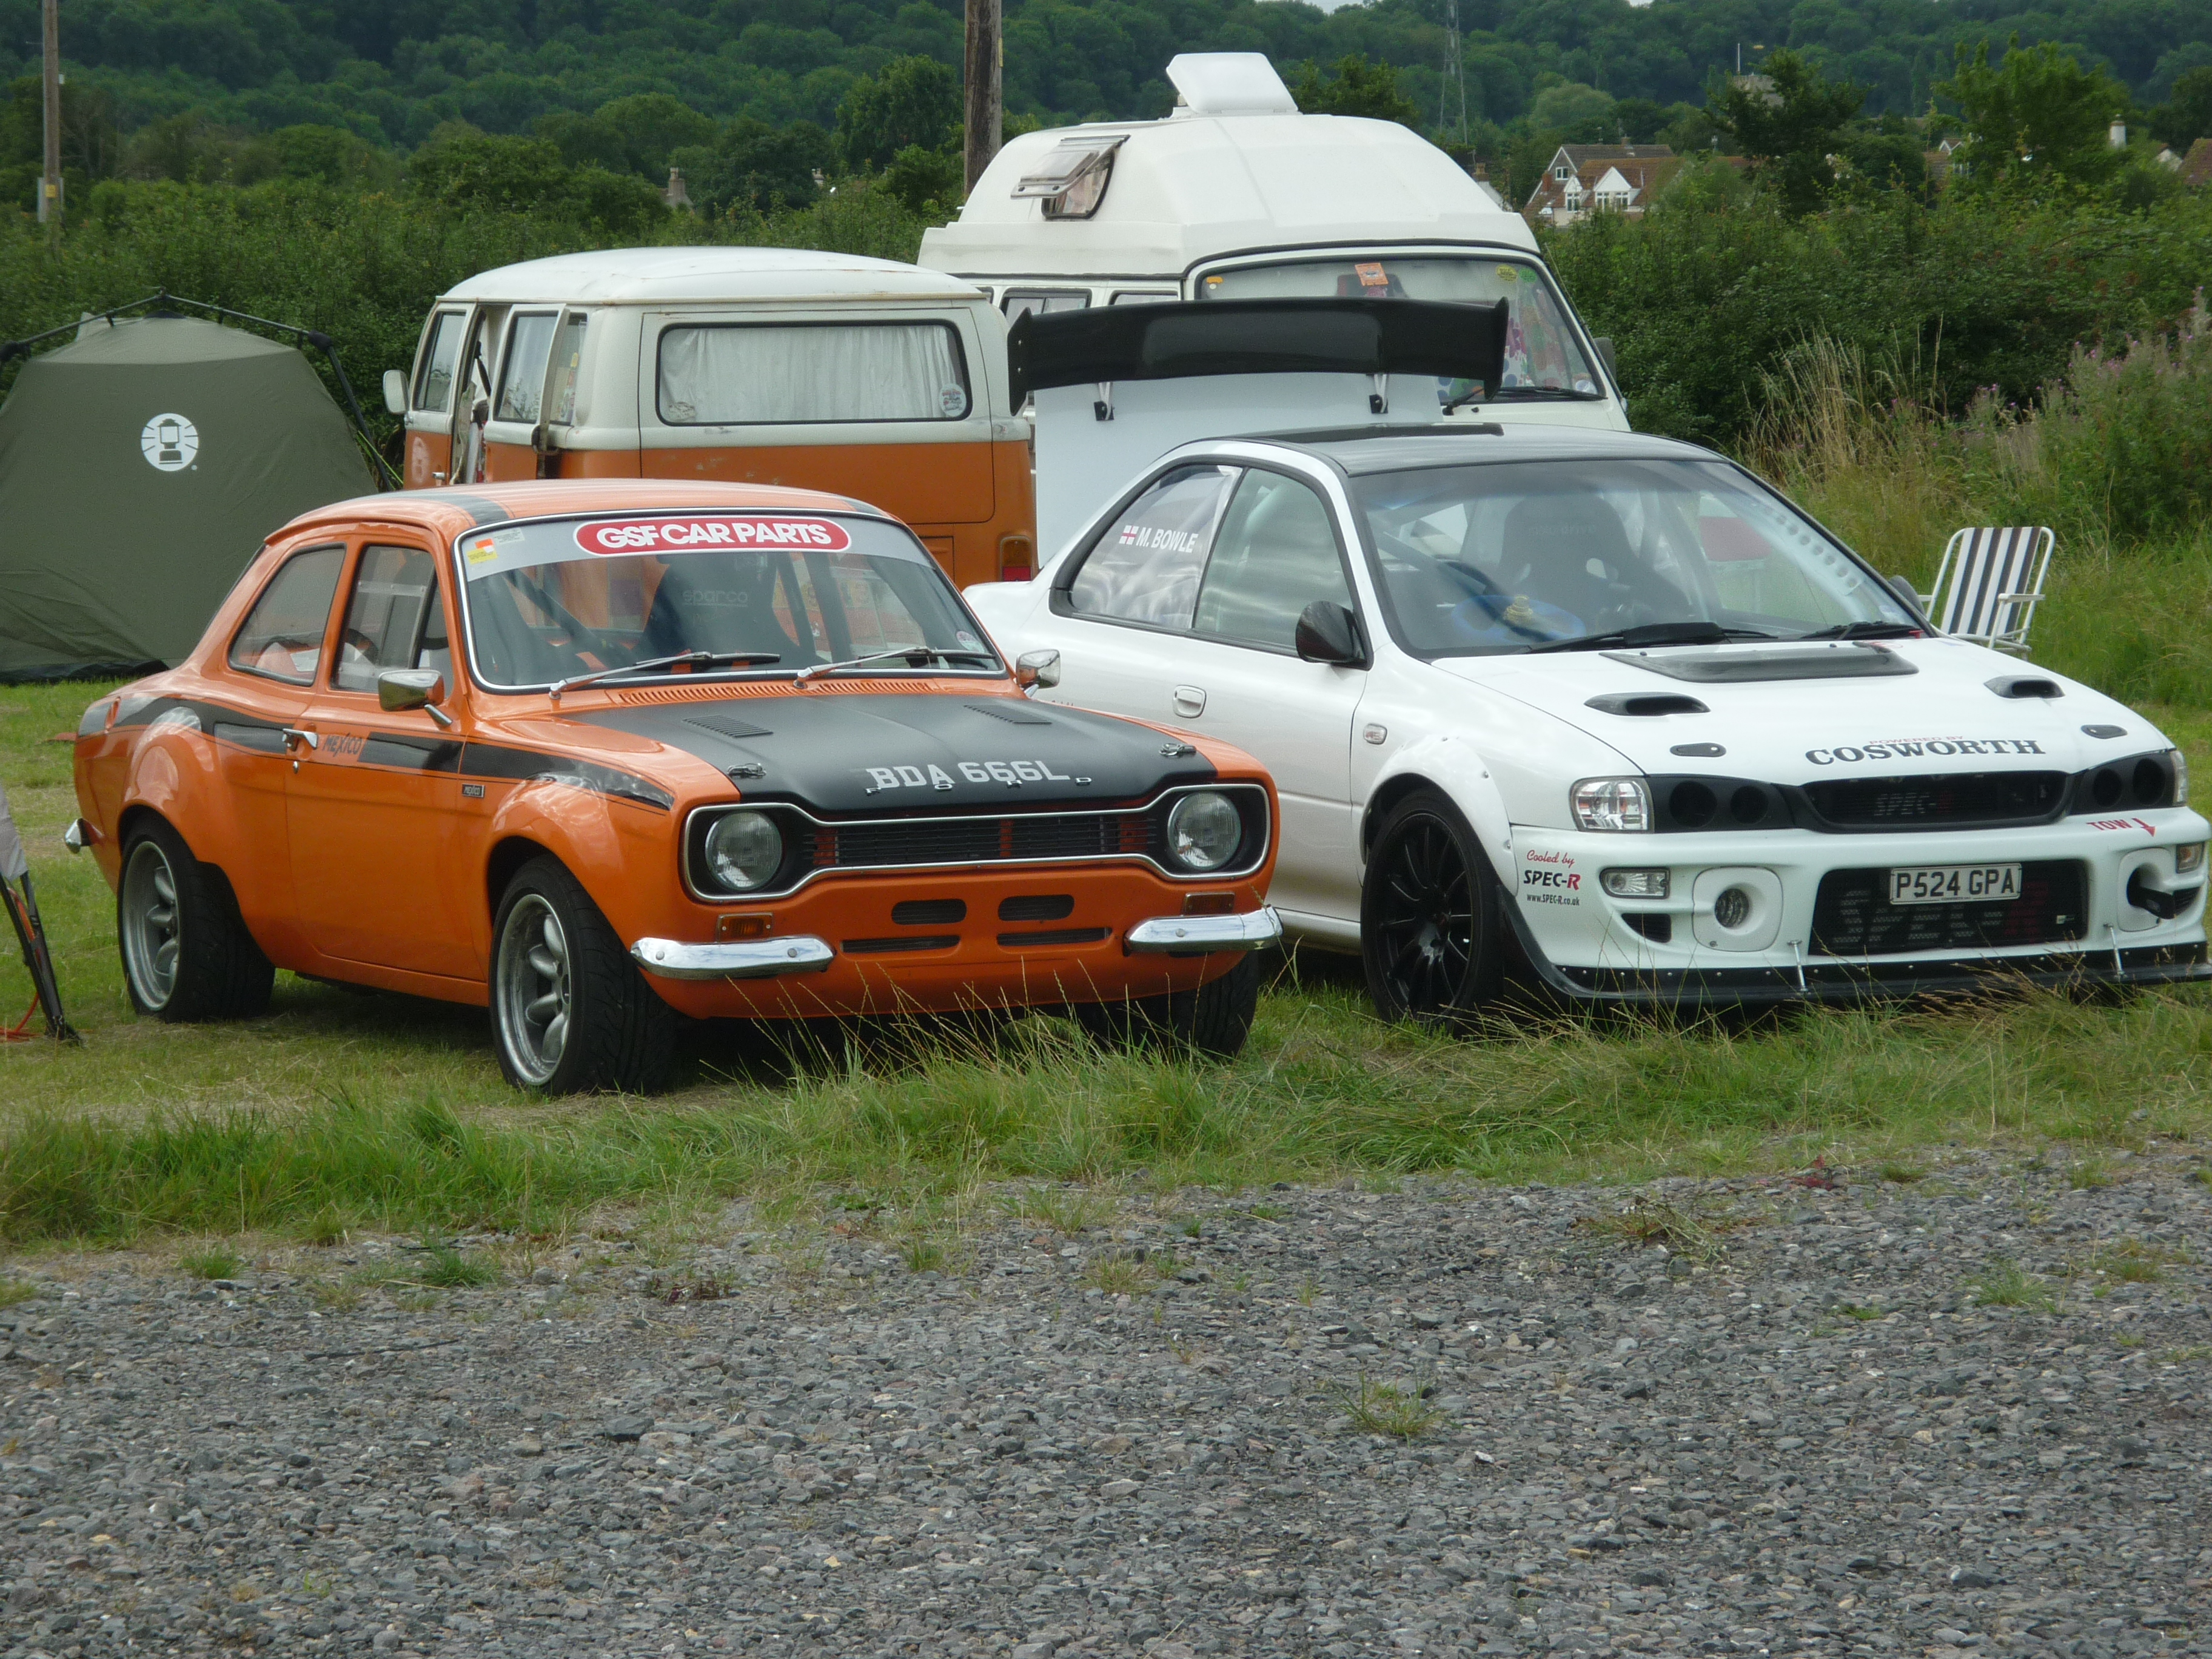 Modified Escort and Impreza